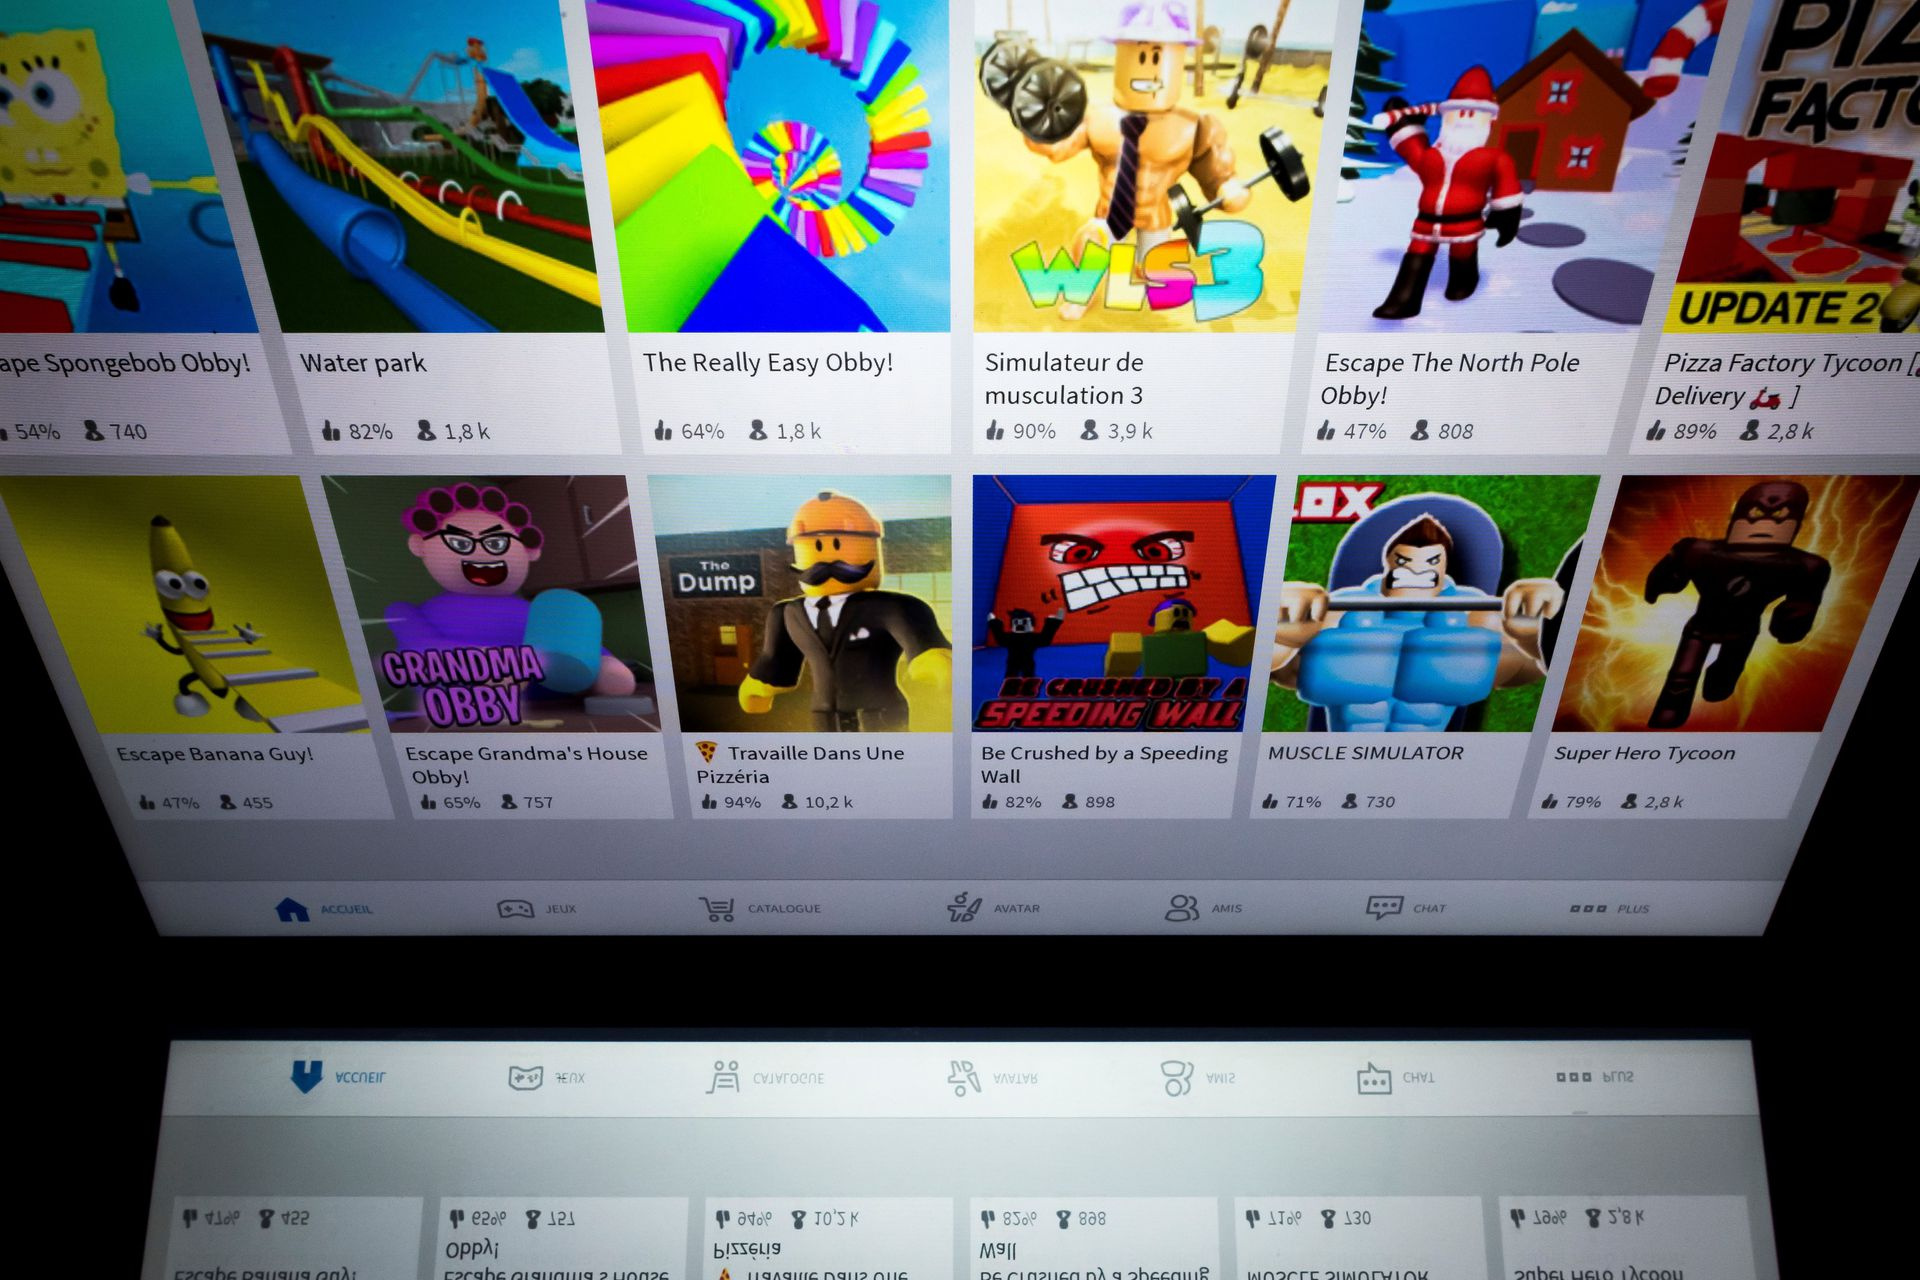 Automating Roblox Games Gaming Company Roblox Now Worth 4 Billion Axios